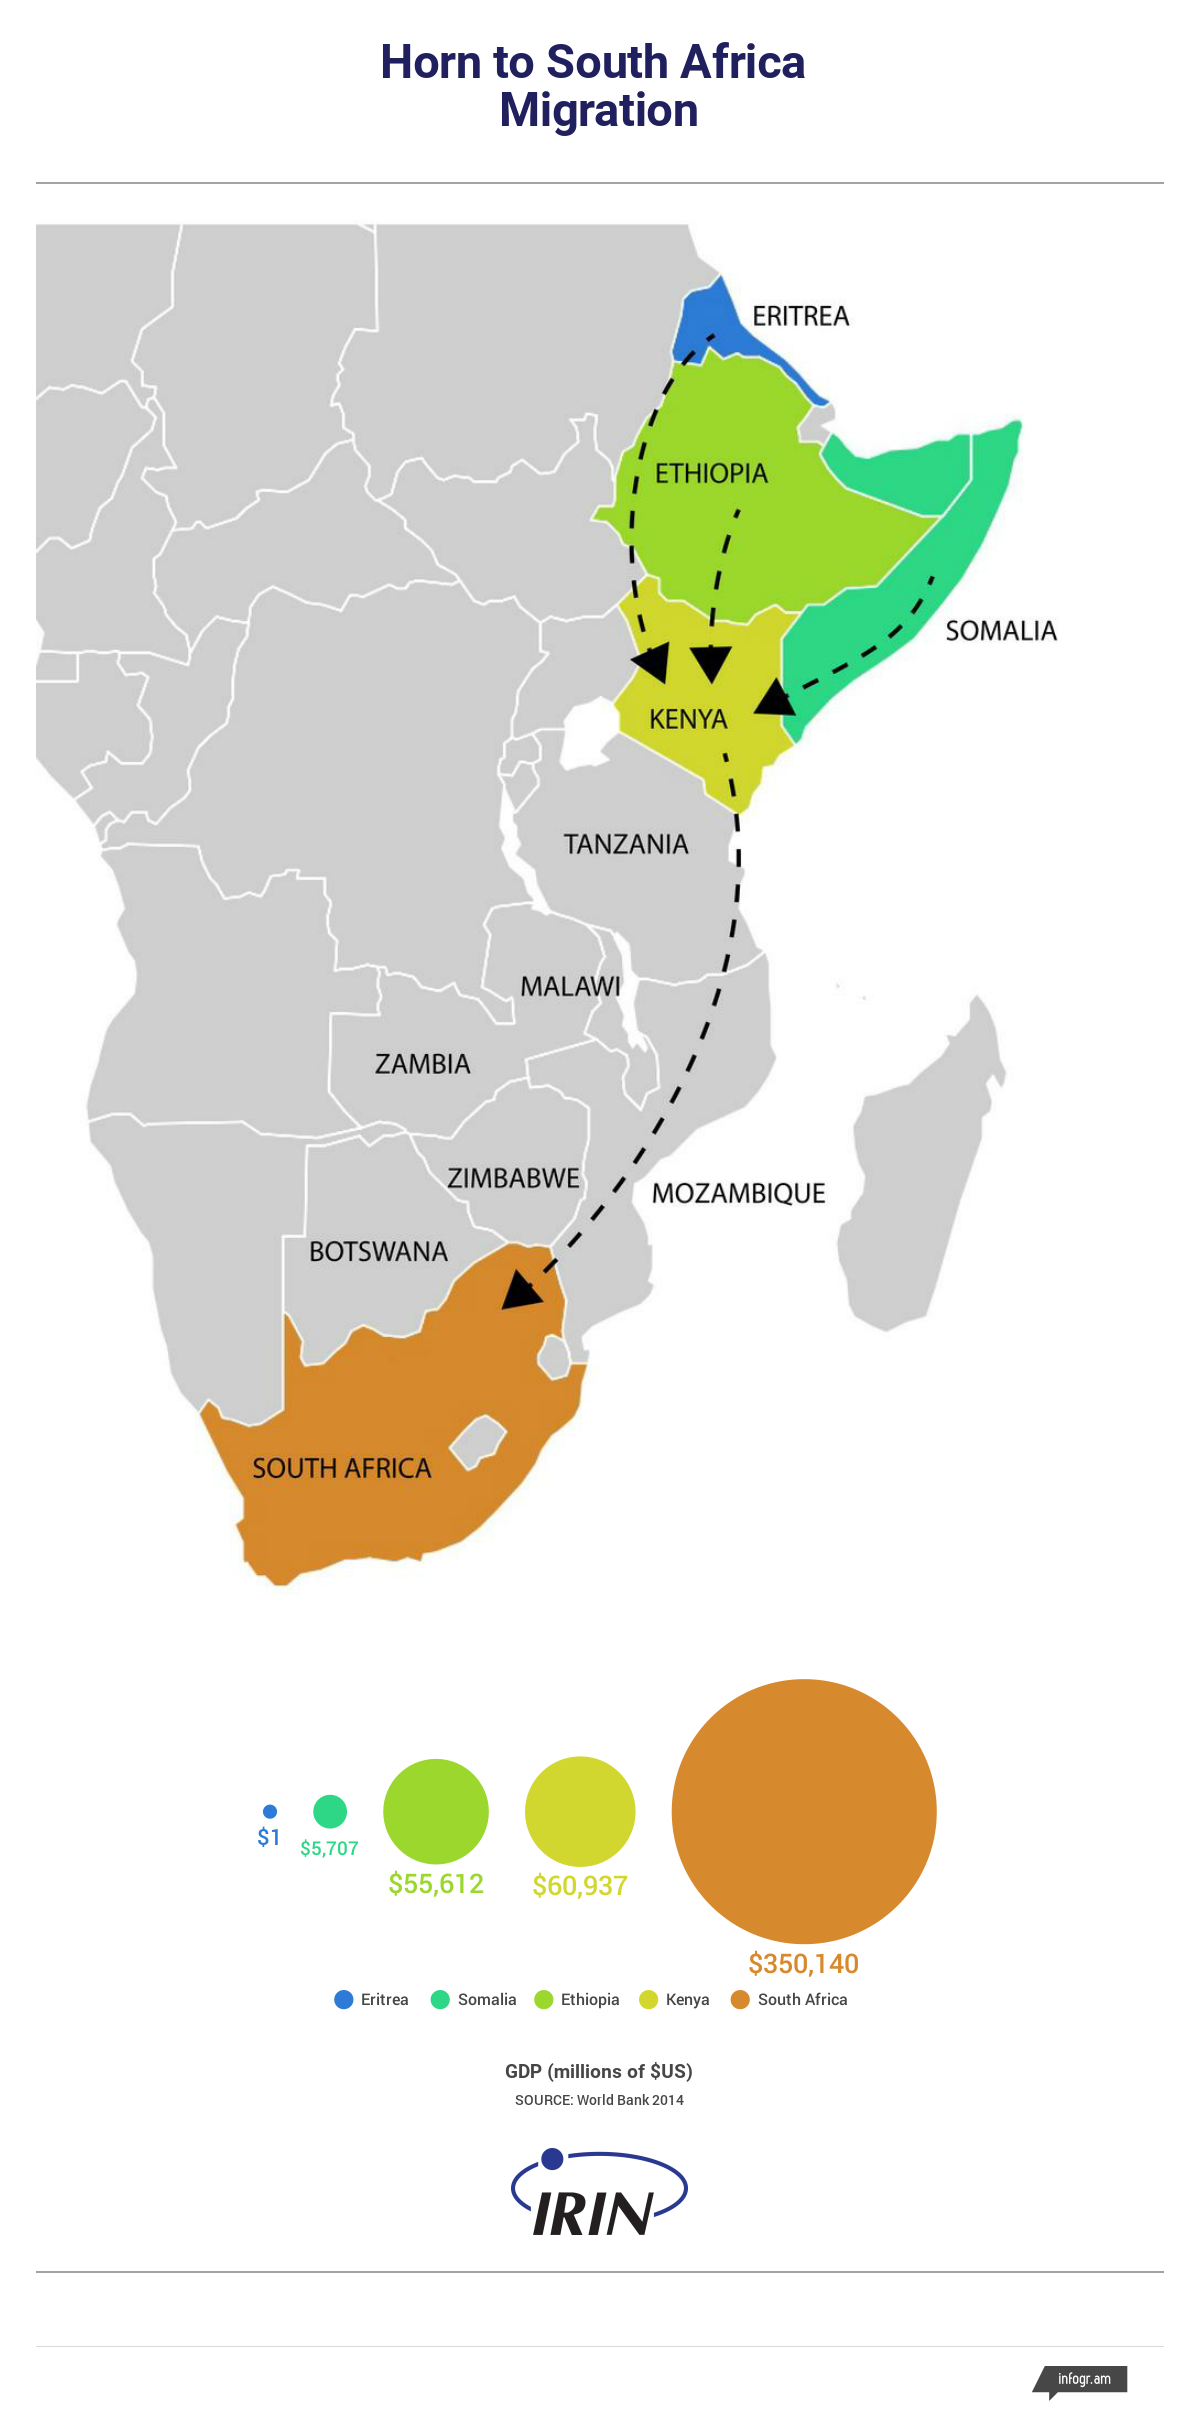 Horn to South Africa migration map